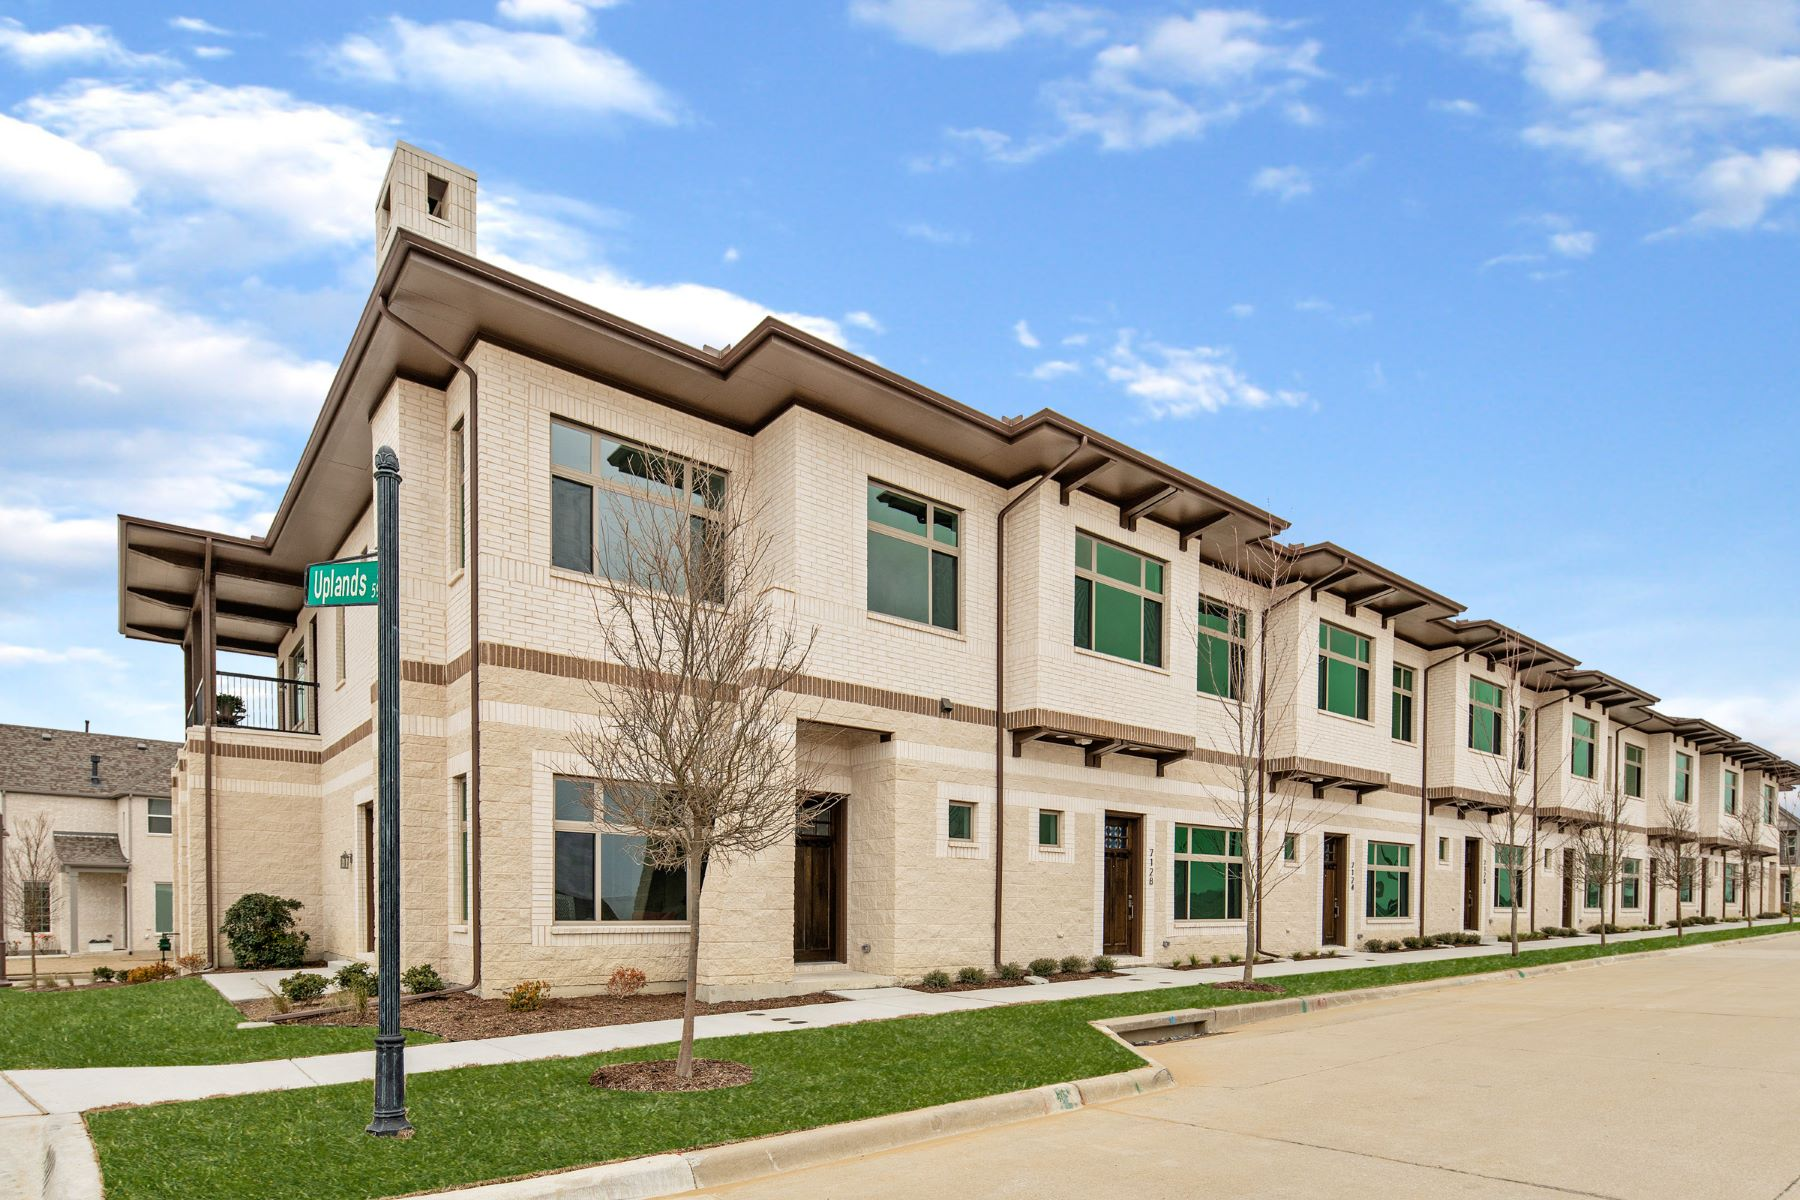 townhouses for Sale at 7100 Wessex Court, McKinney, TX, 75070 7100 Wessex Court McKinney, Texas 75070 United States